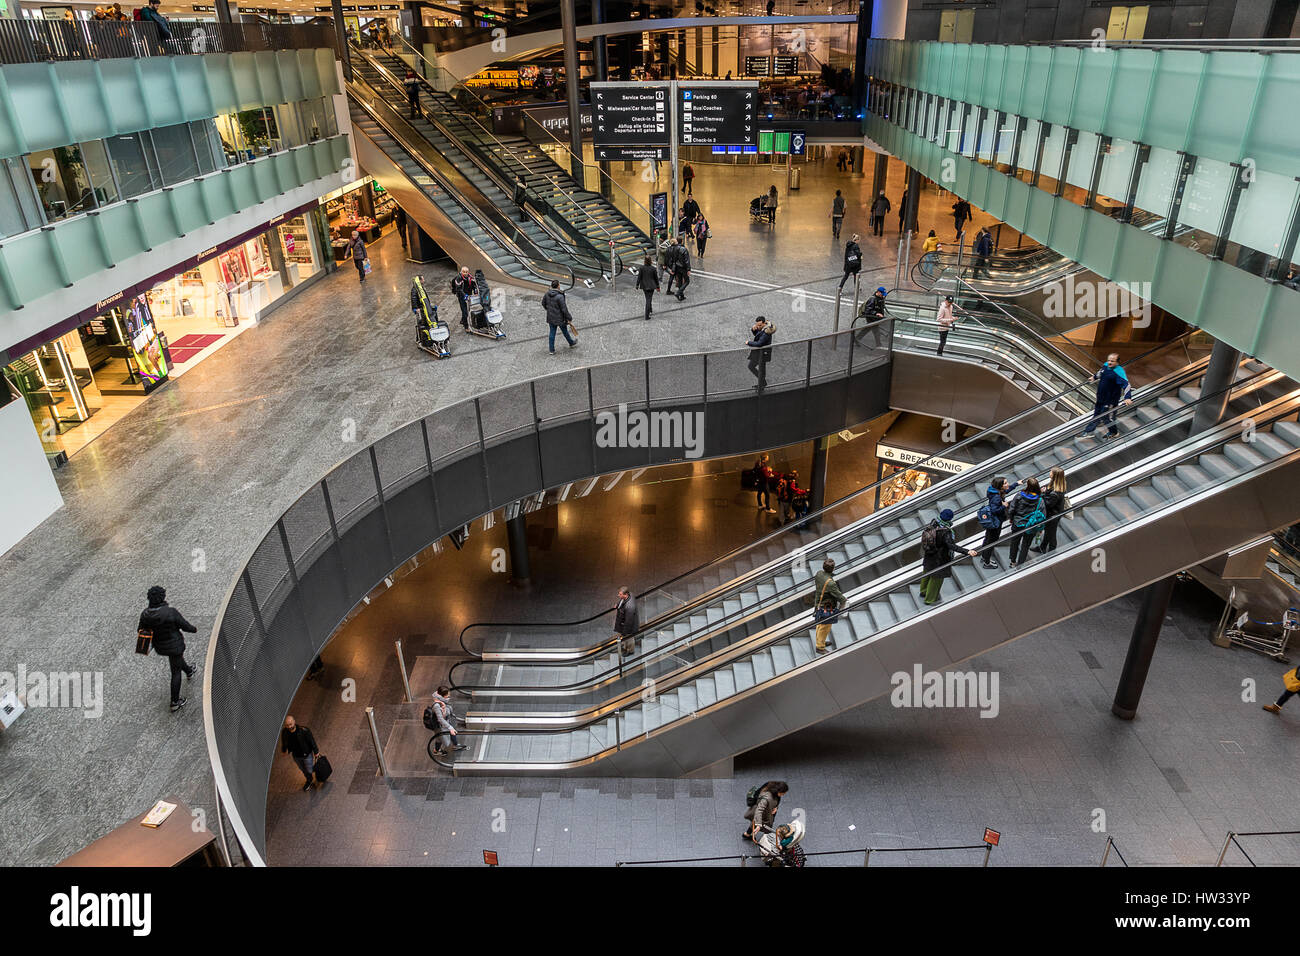 Zurich International Airport in Switzerland - Stock Image